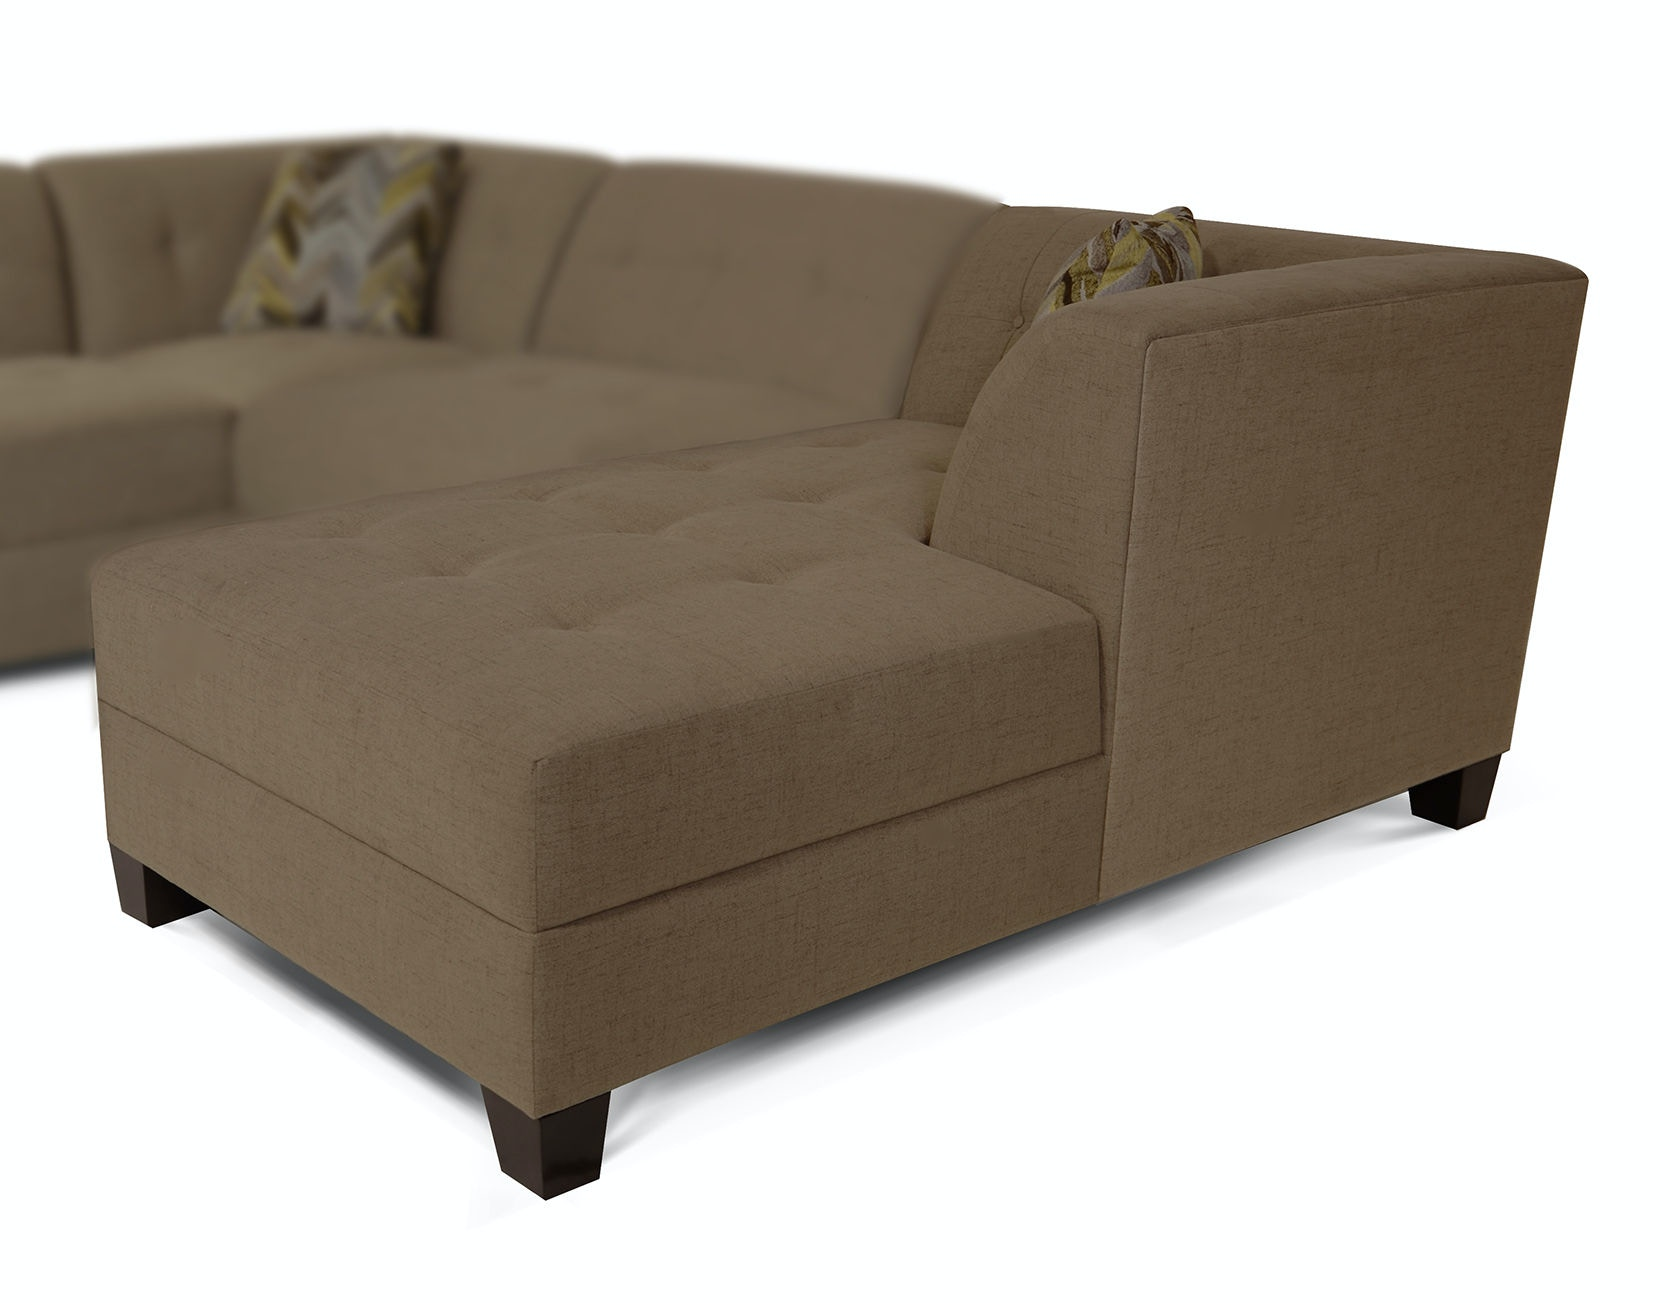 Sofa Foam Leeds Custom Sectional Sofa By England You Pick The Color And Fabric